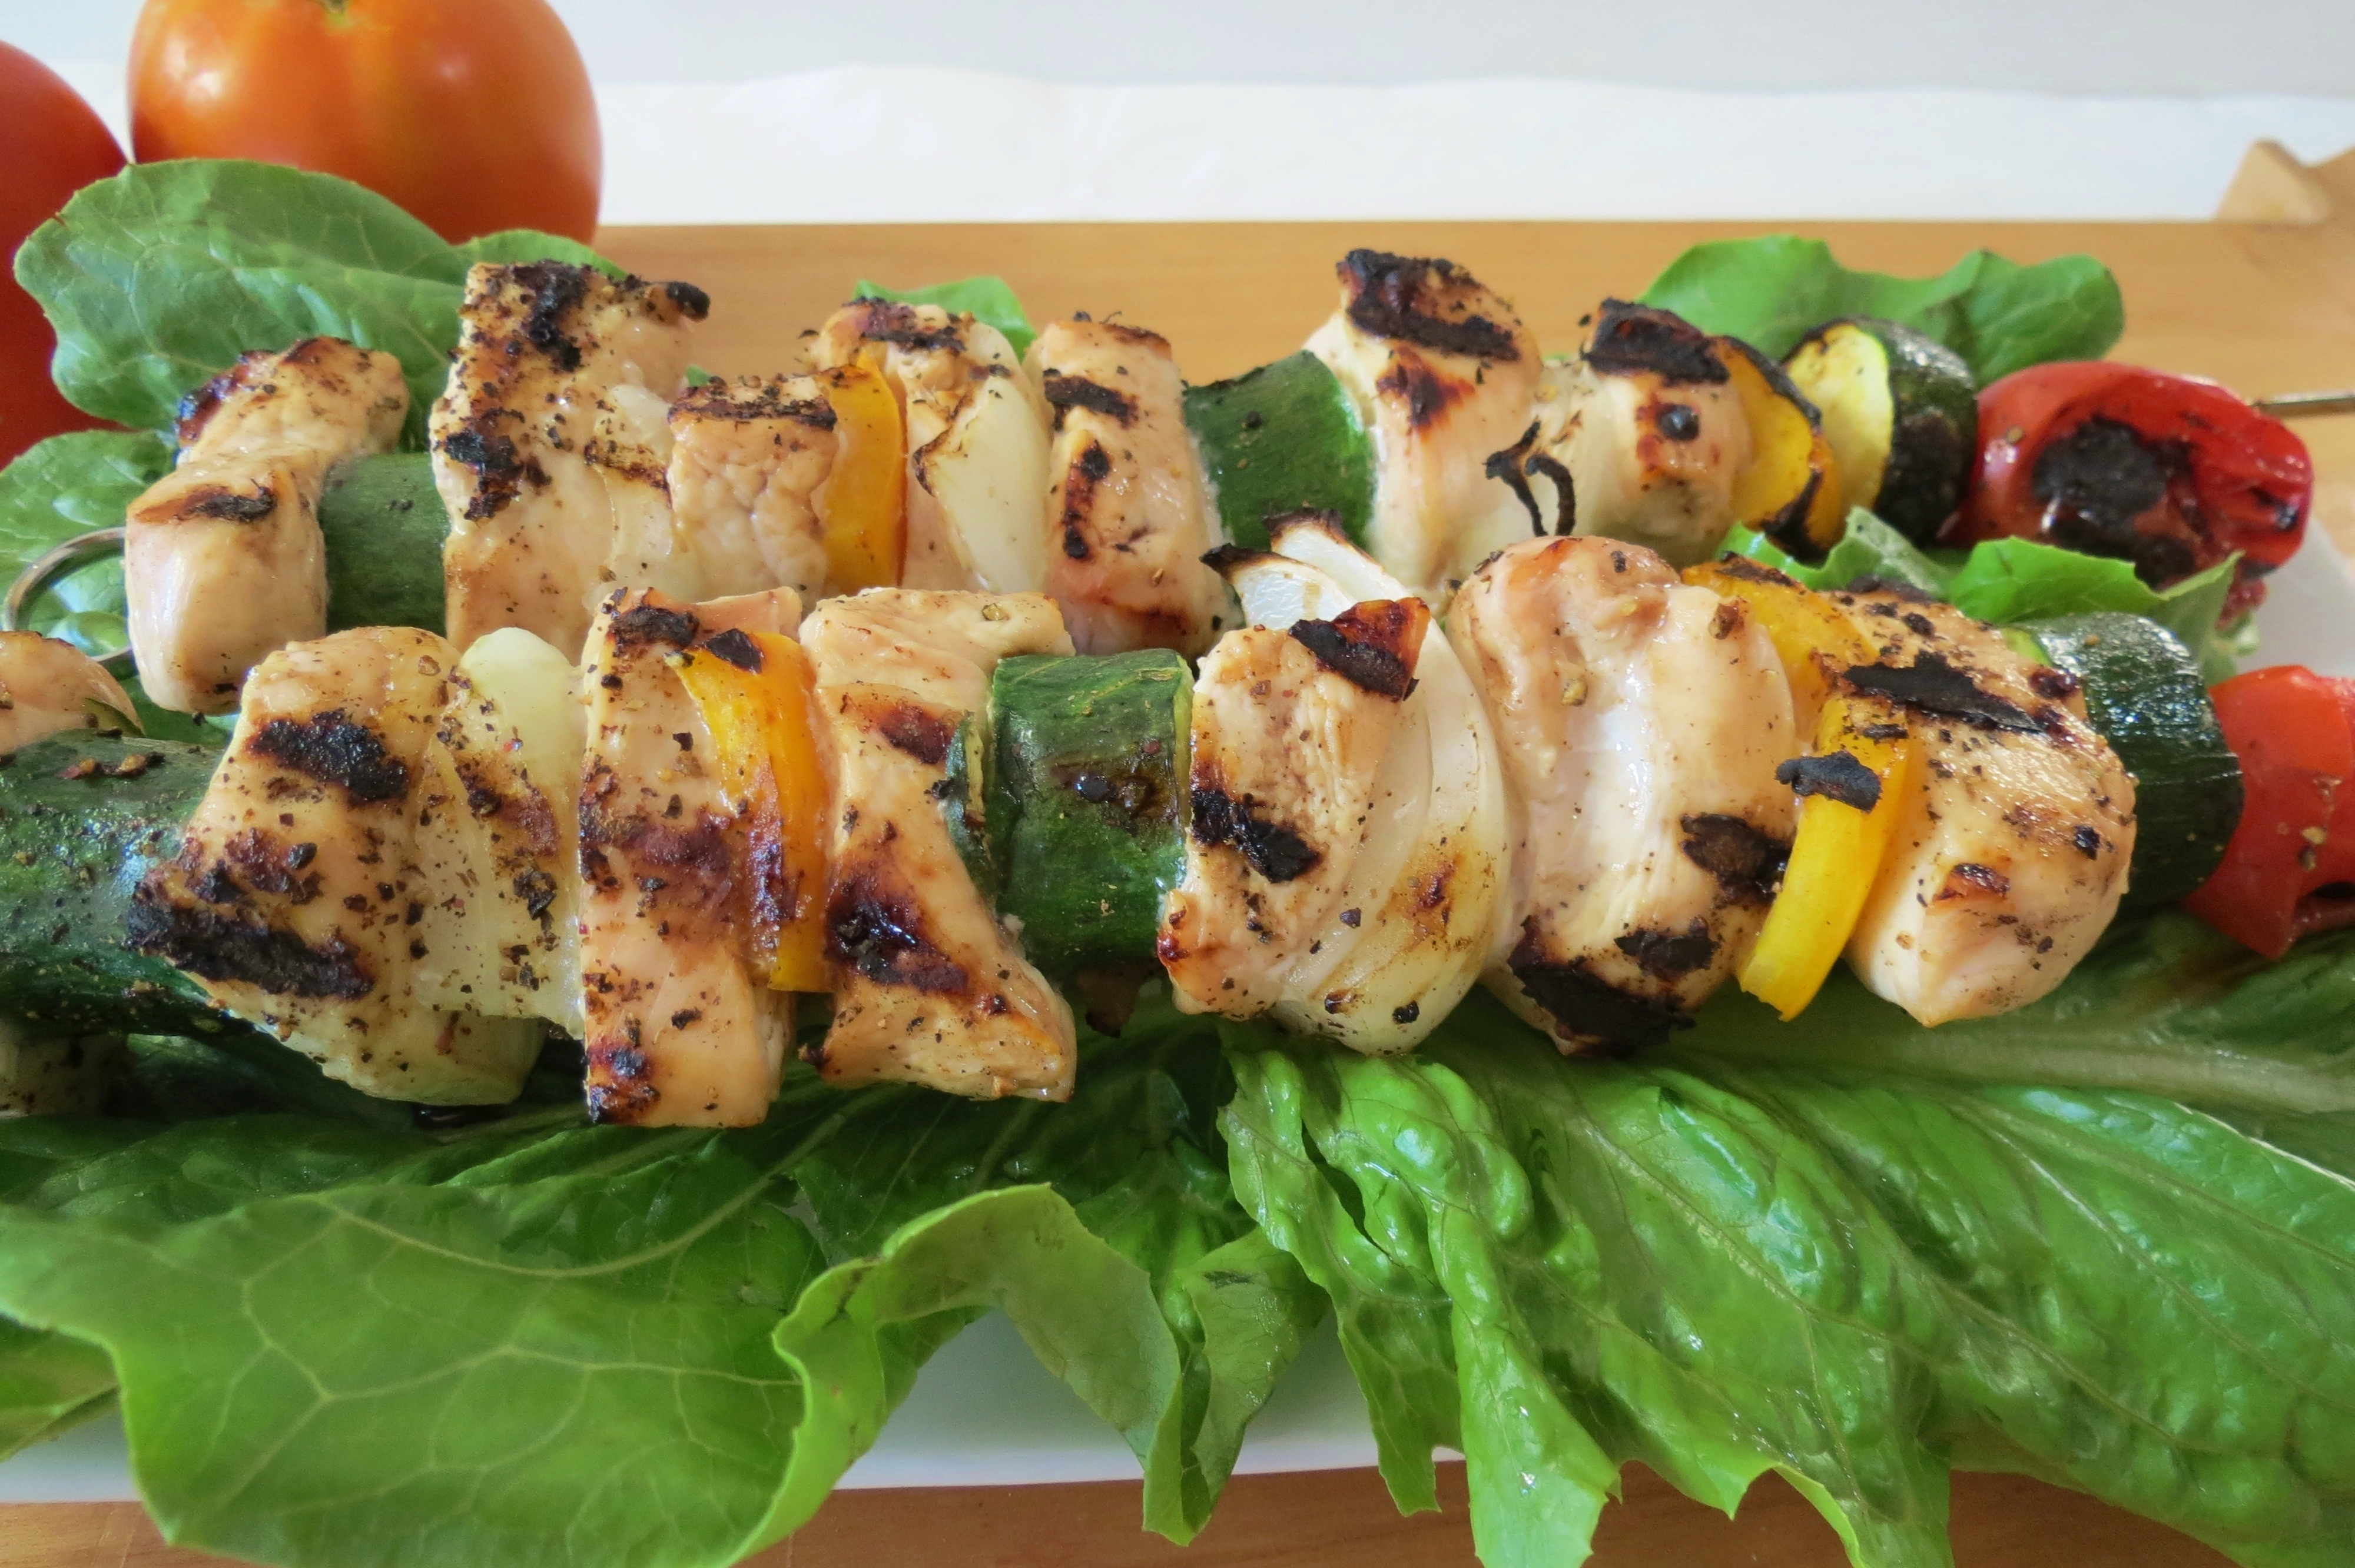 Chicken and Vegetable Shish Kabobs